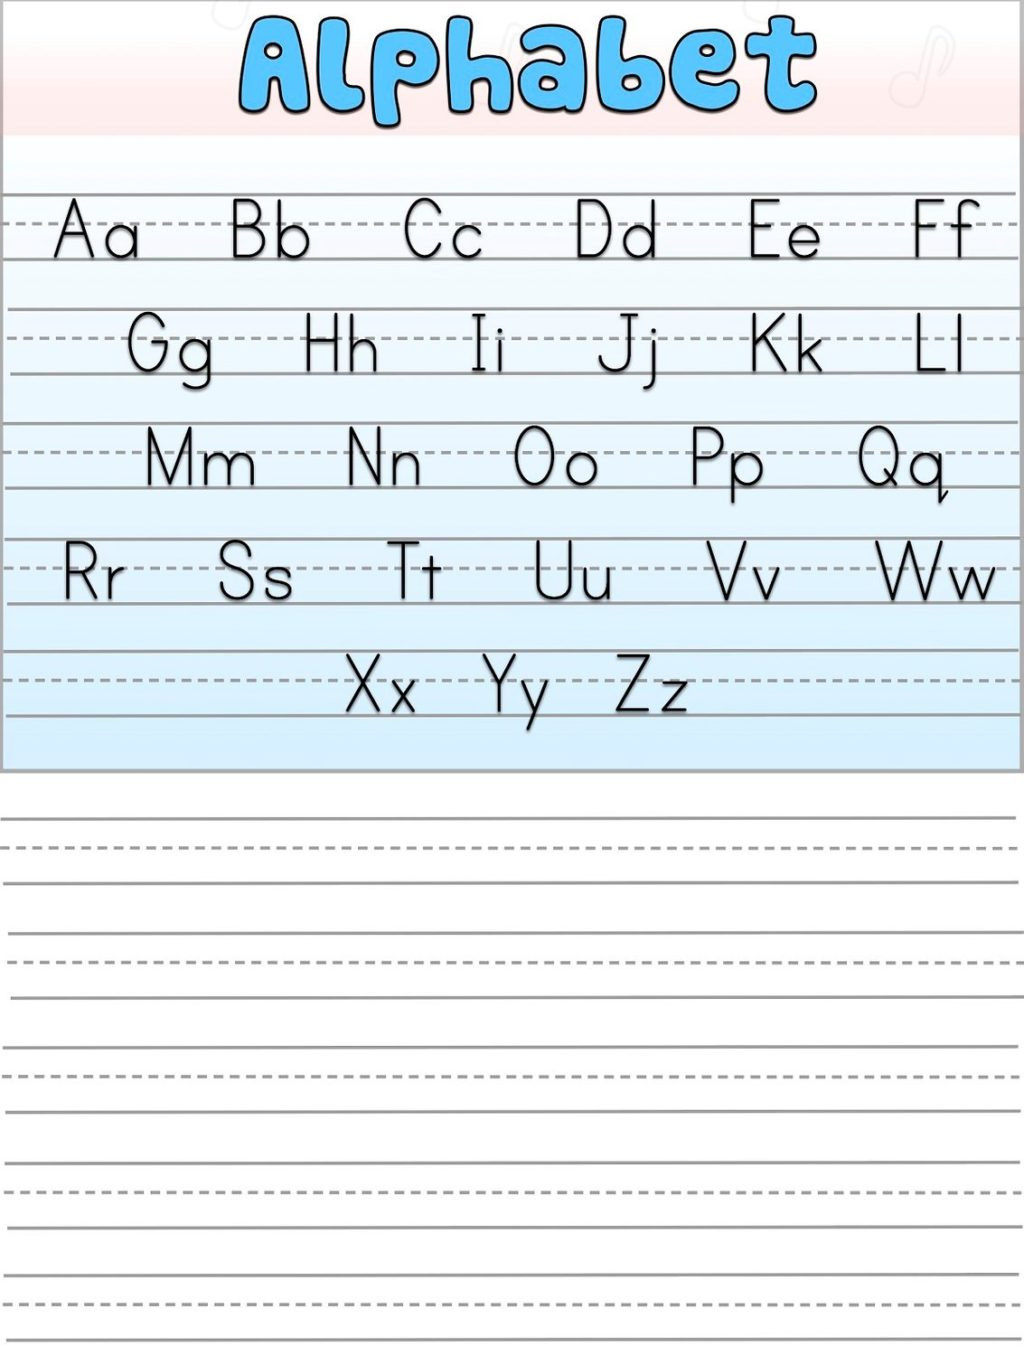 Alphabet Writing Worksheets Pdf Alphabet Writing Practice Sheet Free Worksheets Pdf Download